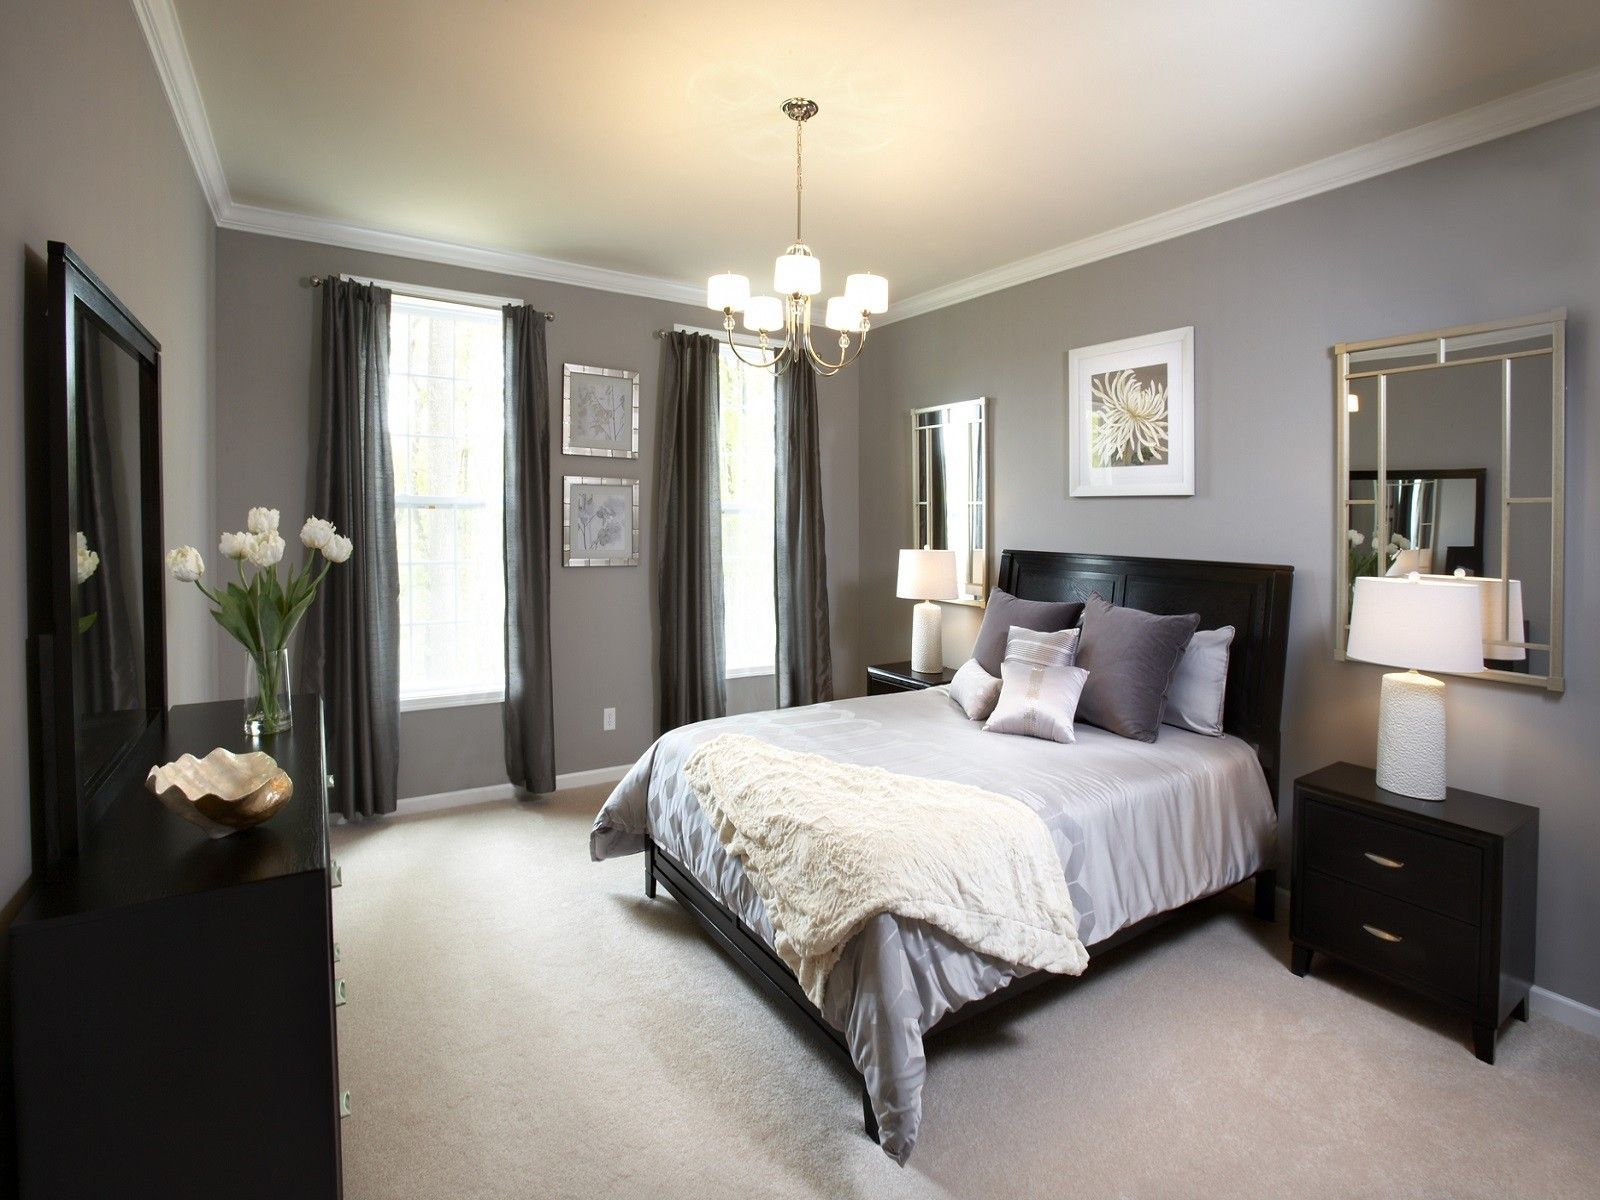 Bedroom colors grey and white - Black Bedroom Ideas Inspiration For Master Bedroom Designs